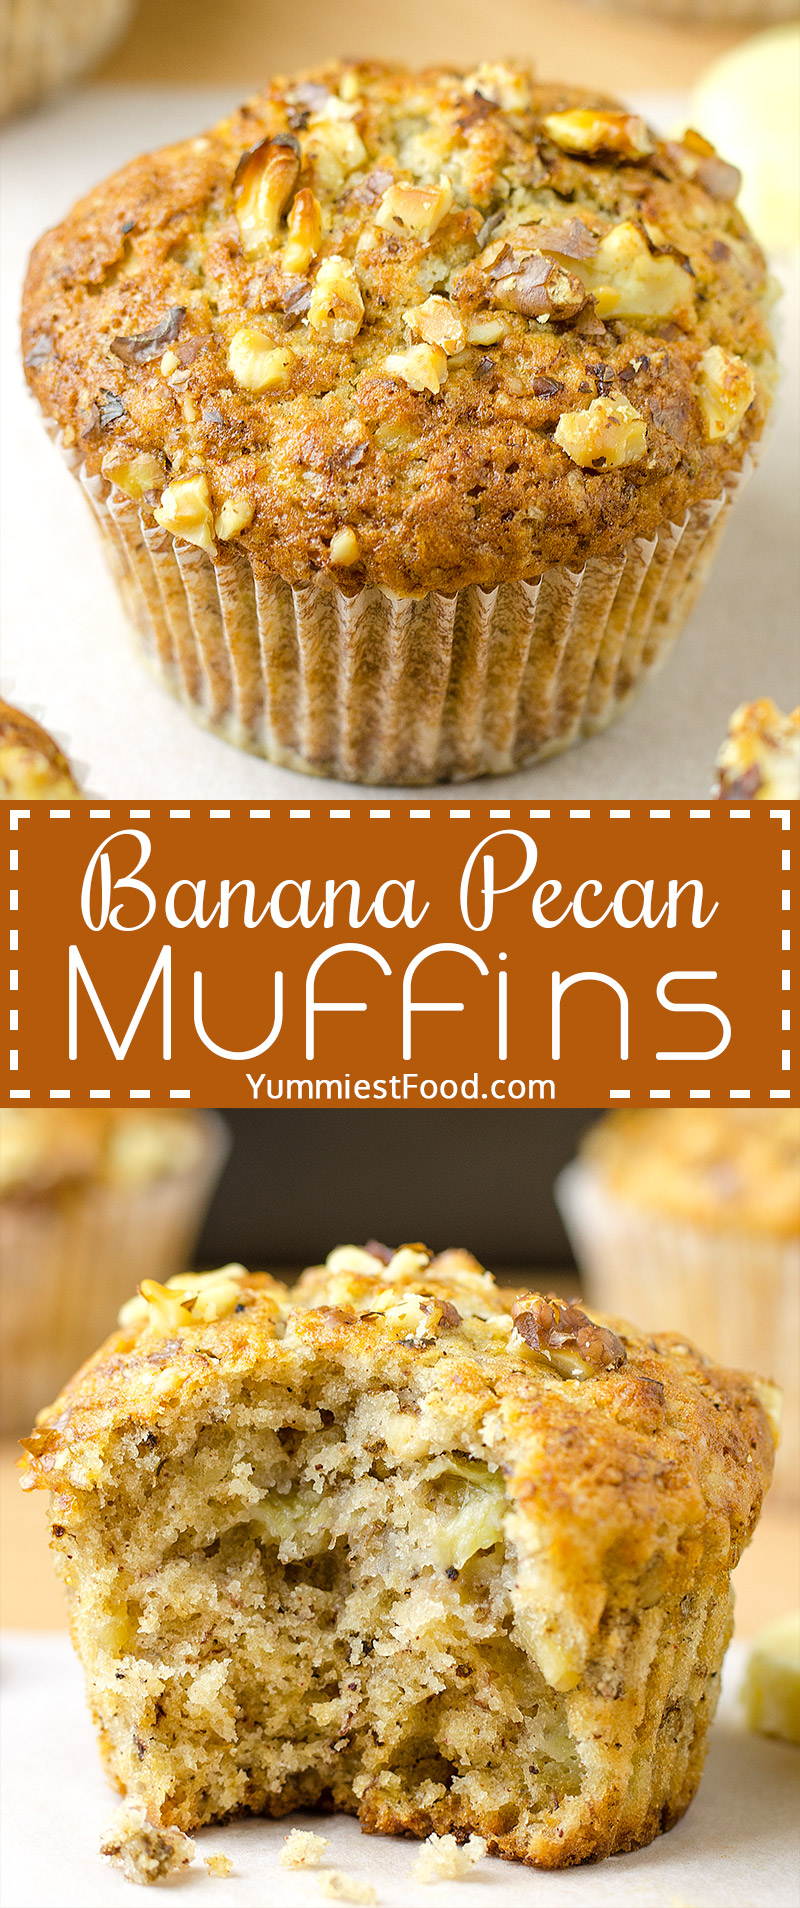 BANANA PECAN MUFFINS - Great for breakfast, snack or a dessert